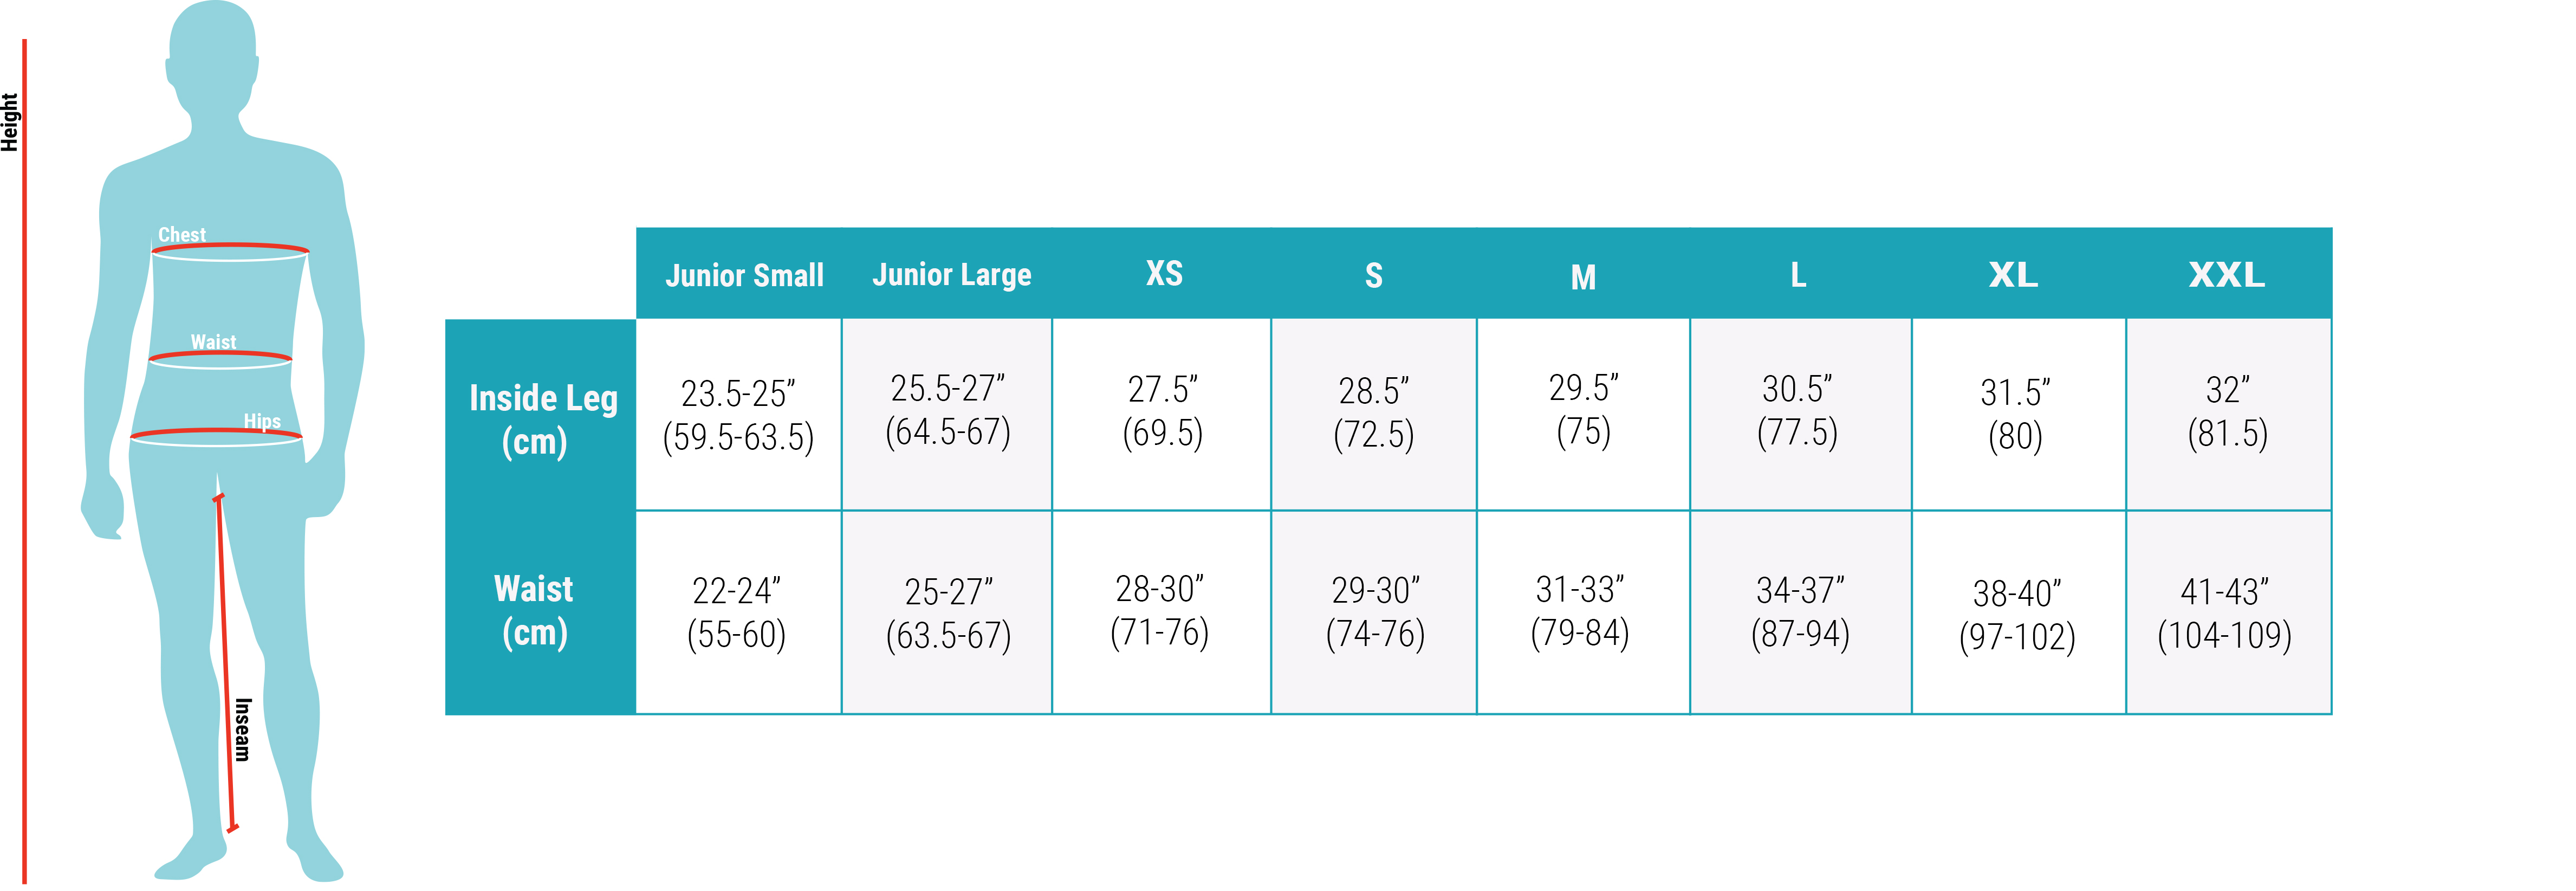 wcs-rooster-mens-sizing-chart.jpg